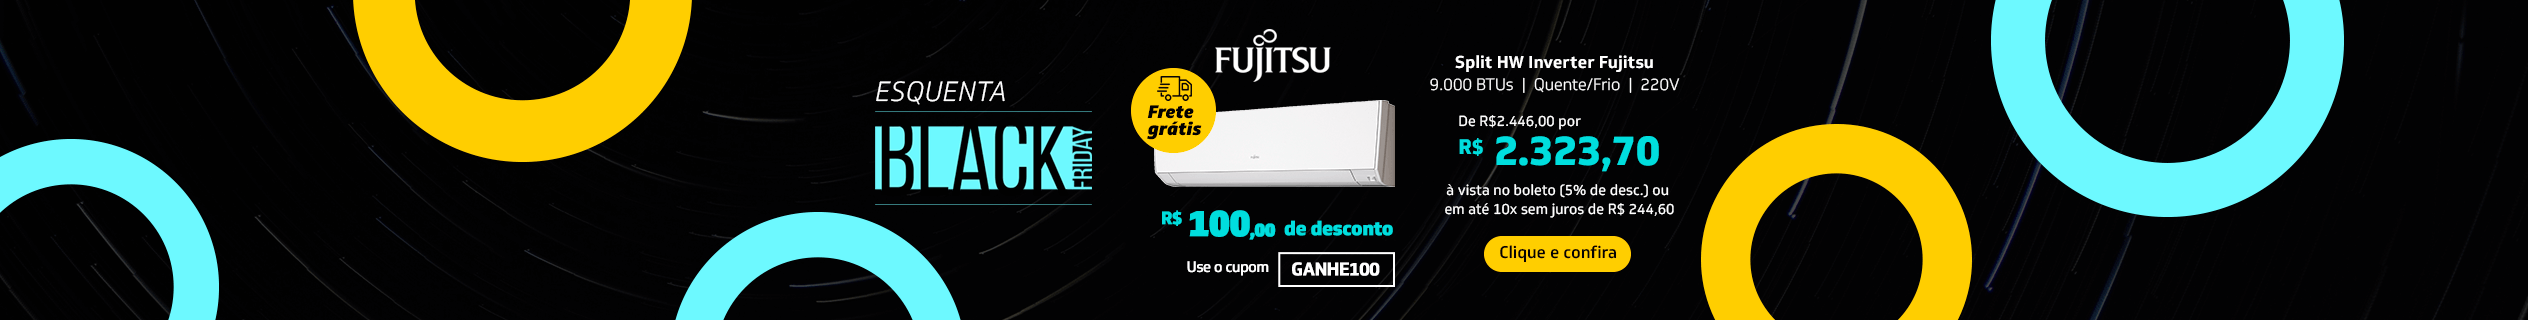 full_banner-desktop-esquenta-black-0911-1411-2.png